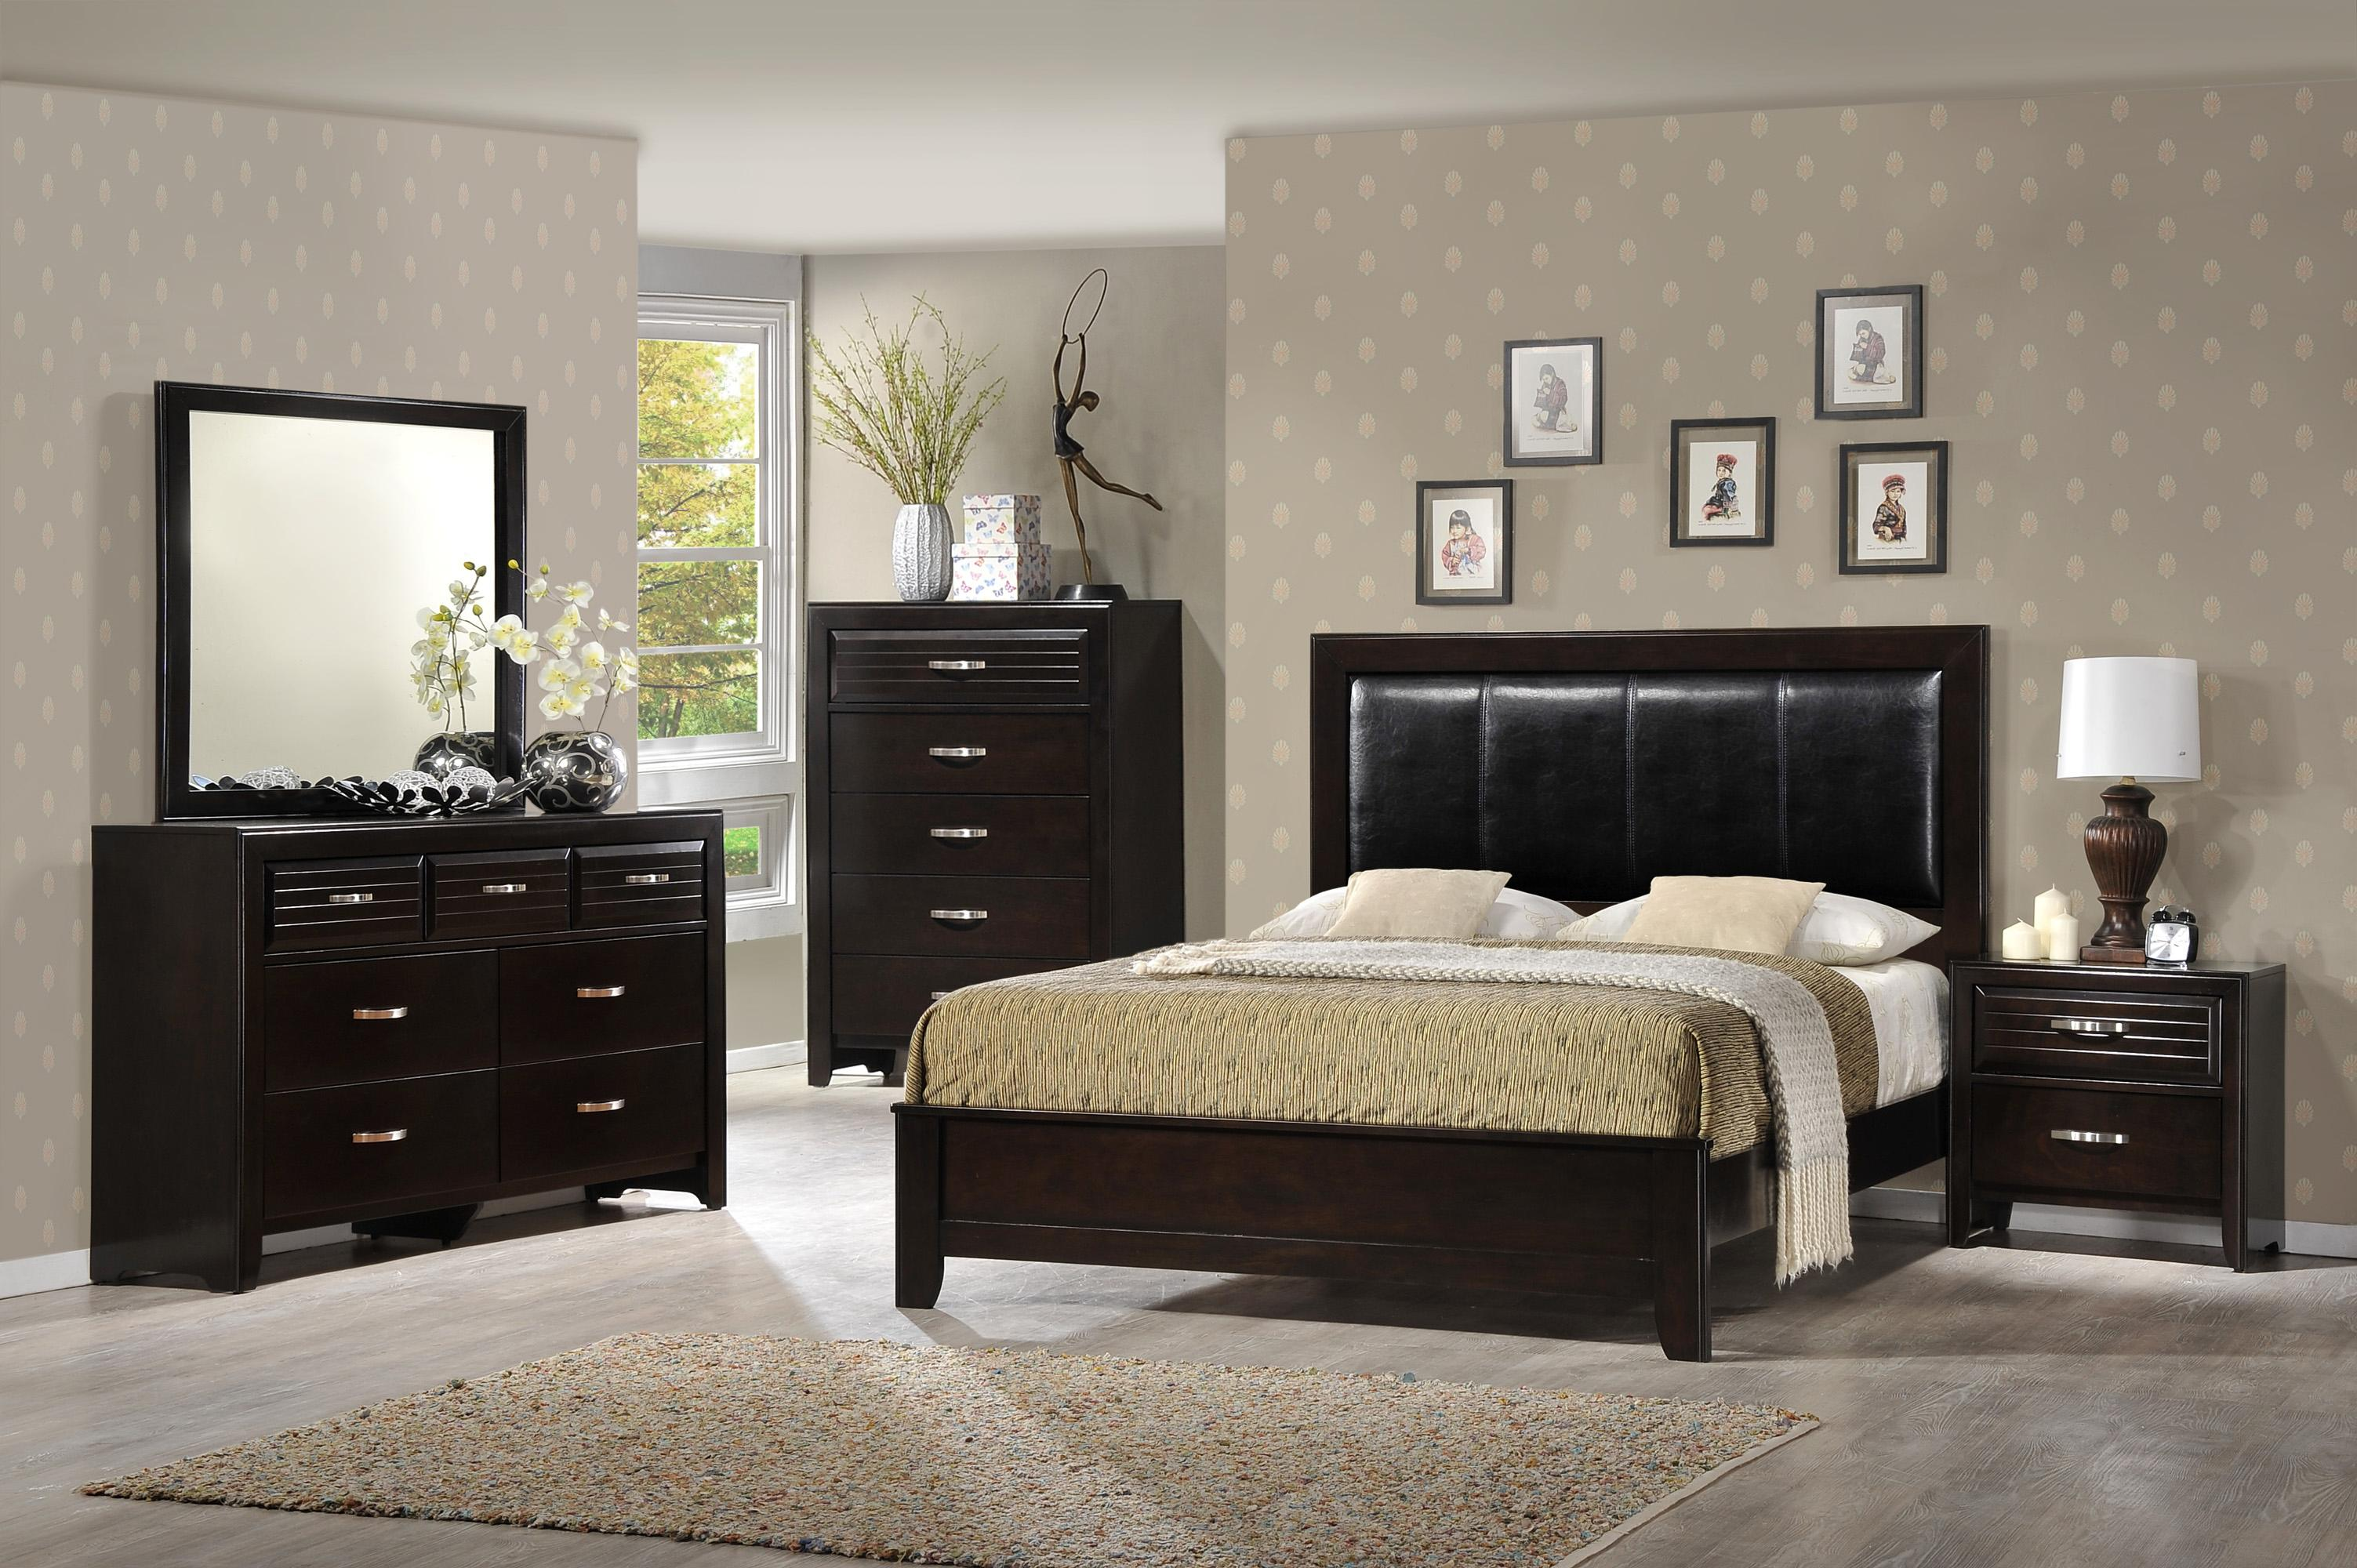 Crown Mark Jocelyn King Bedroom Group - Item Number: B7400 K Bedroom Group 1